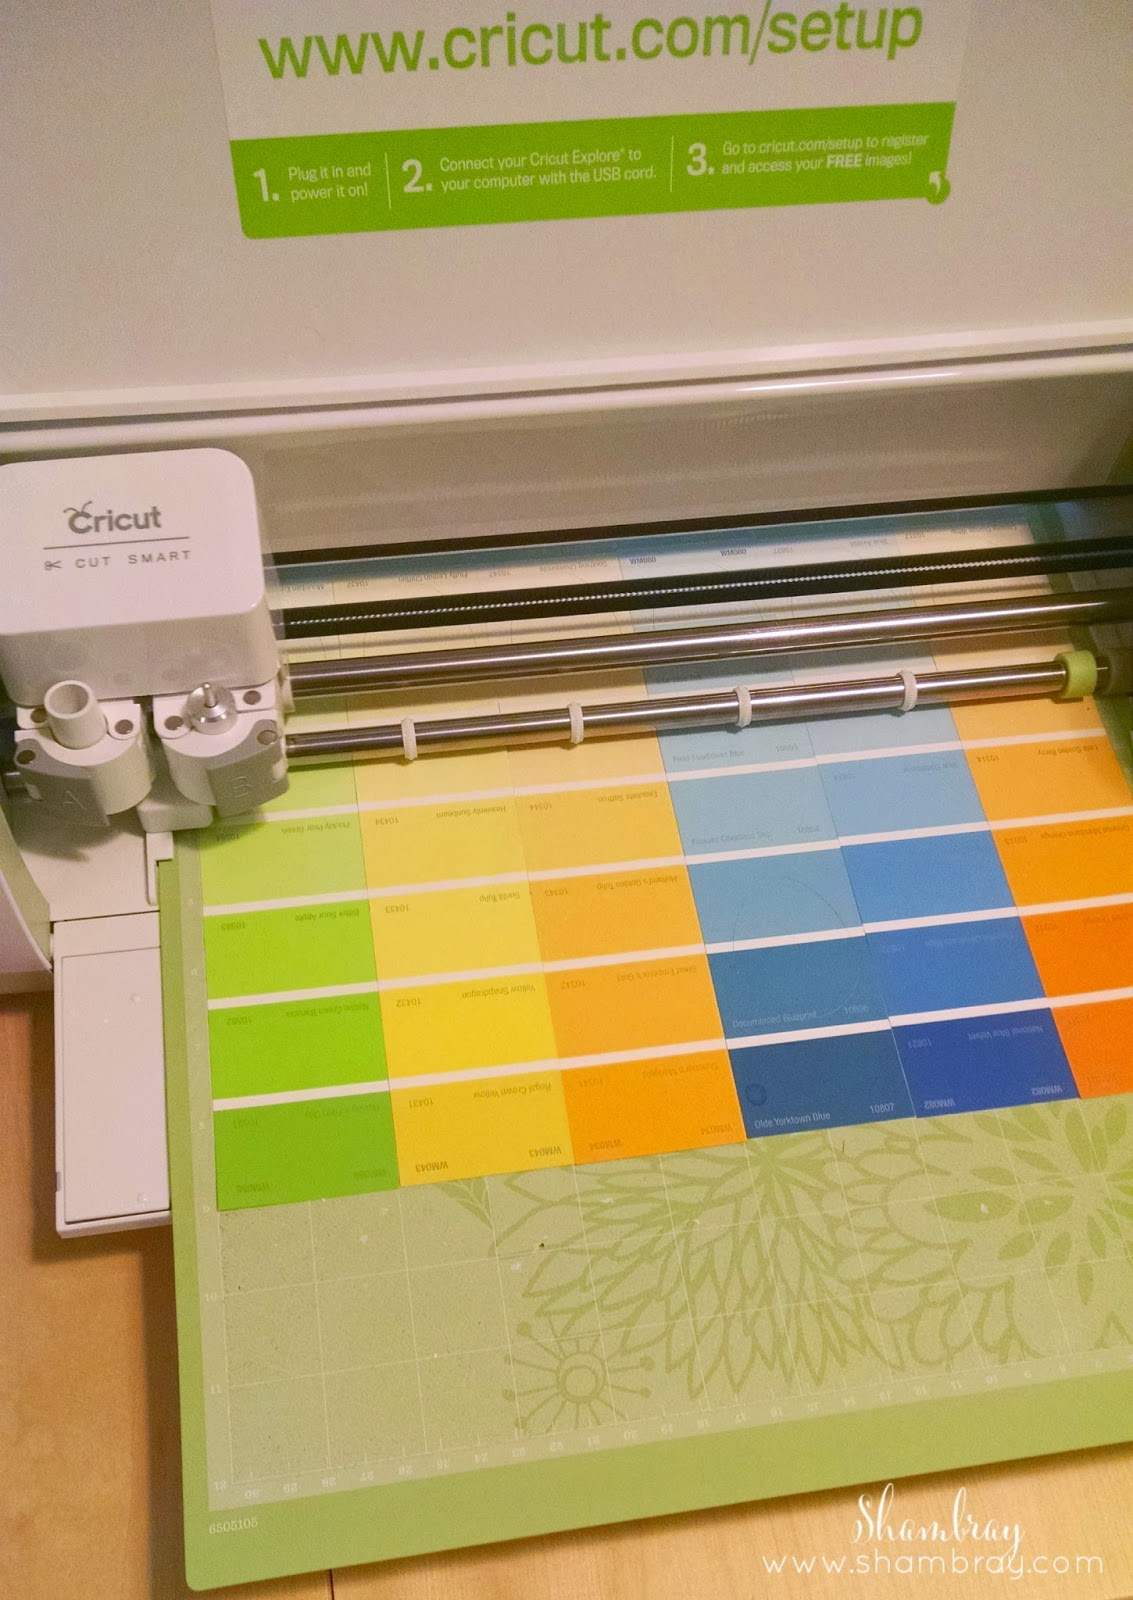 Cricut Explore, cutting mats